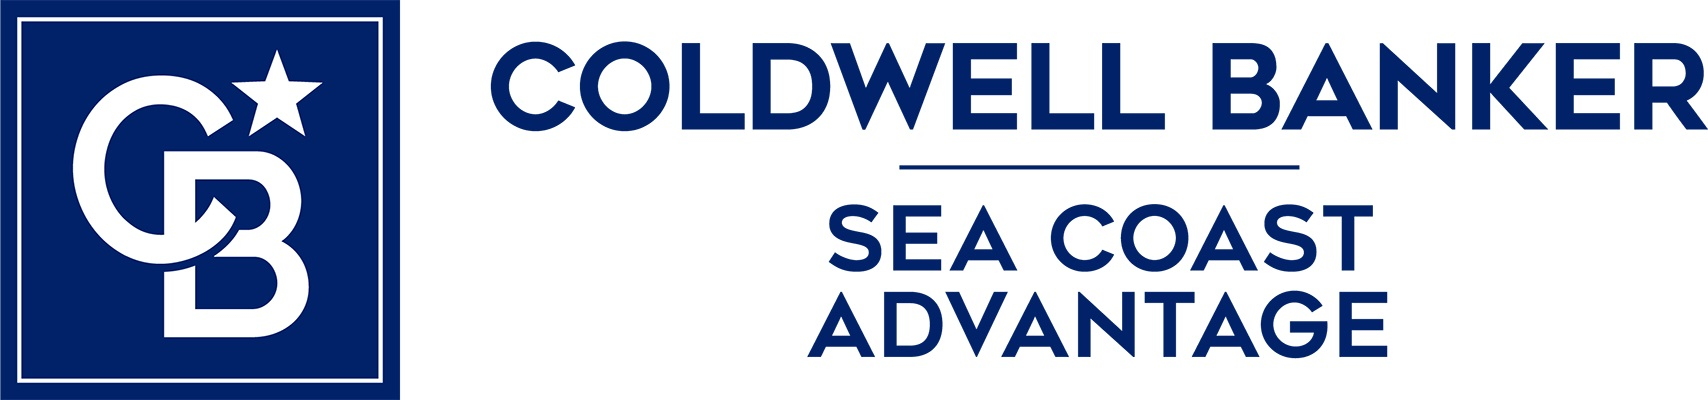 Tom O'Neill - Coldwell Banker Sea Coast Advantage Realty